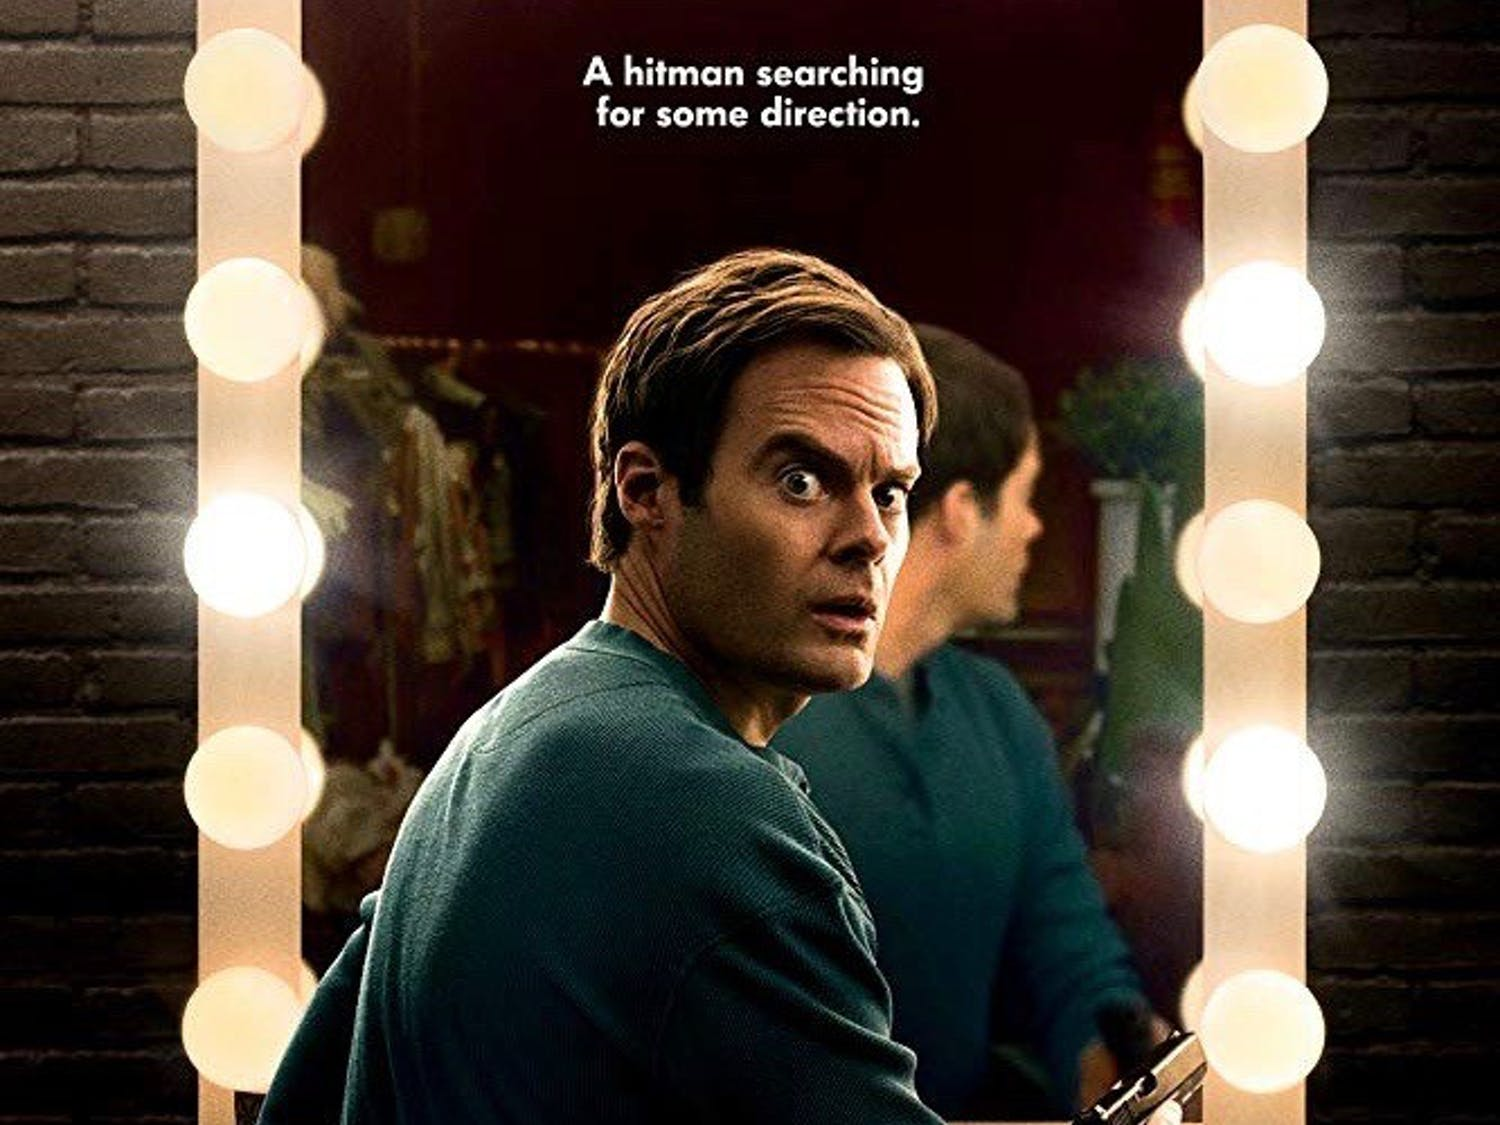 Proving to be a constantly enjoyable presence, Bill Hader without a doubt earned his Emmy for this show.